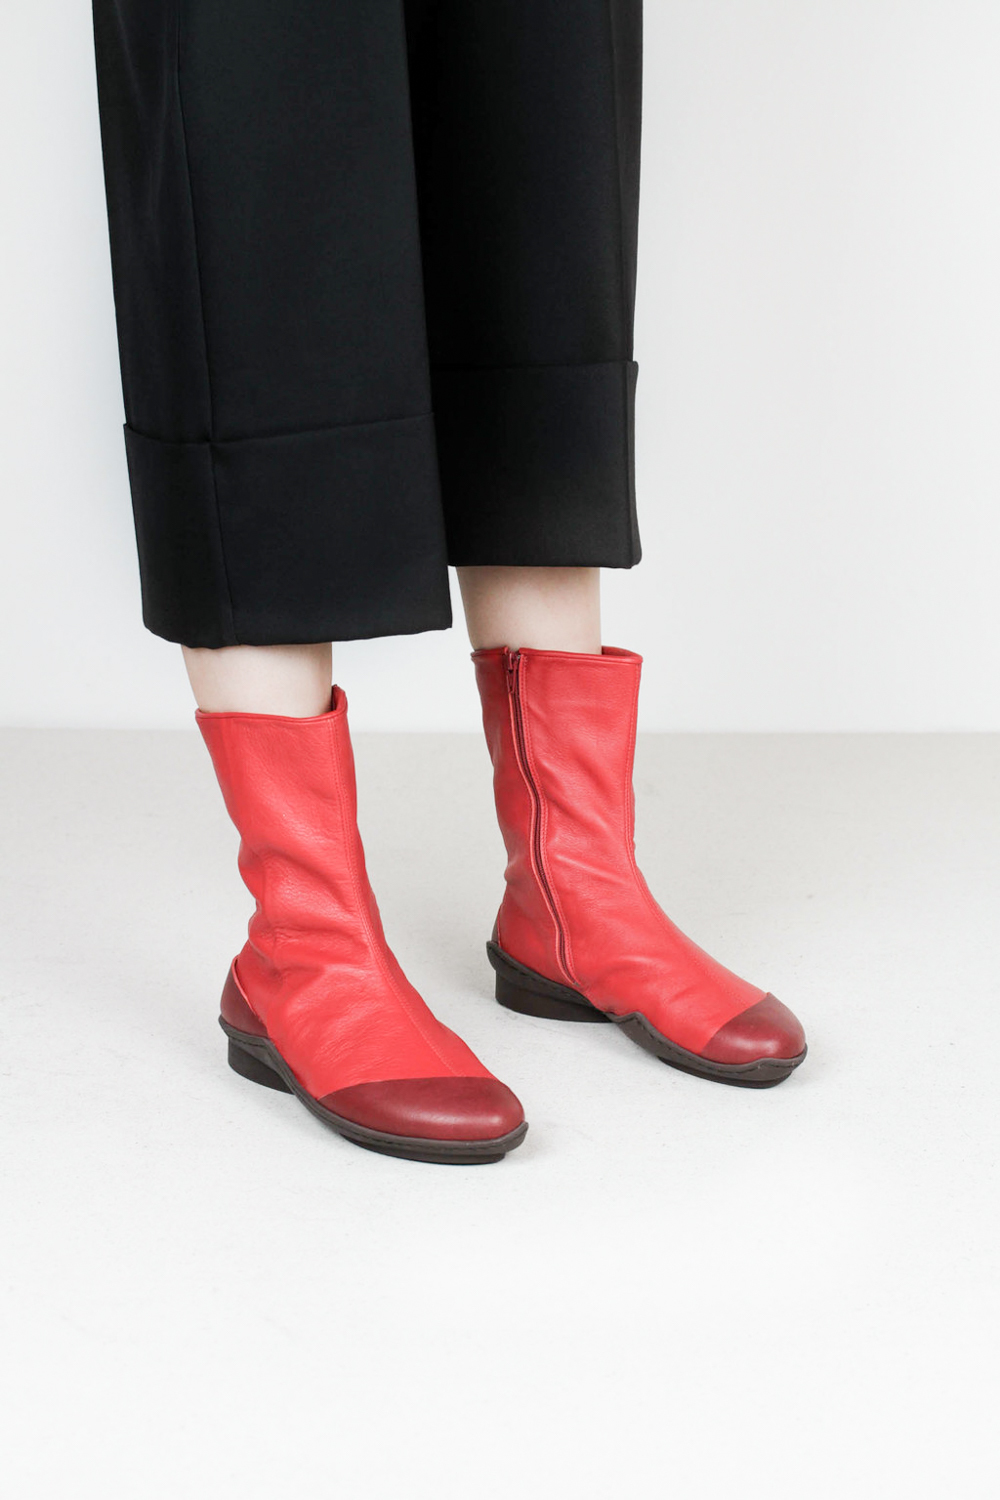 Trippen dolphin berry dpw red sft leather boots